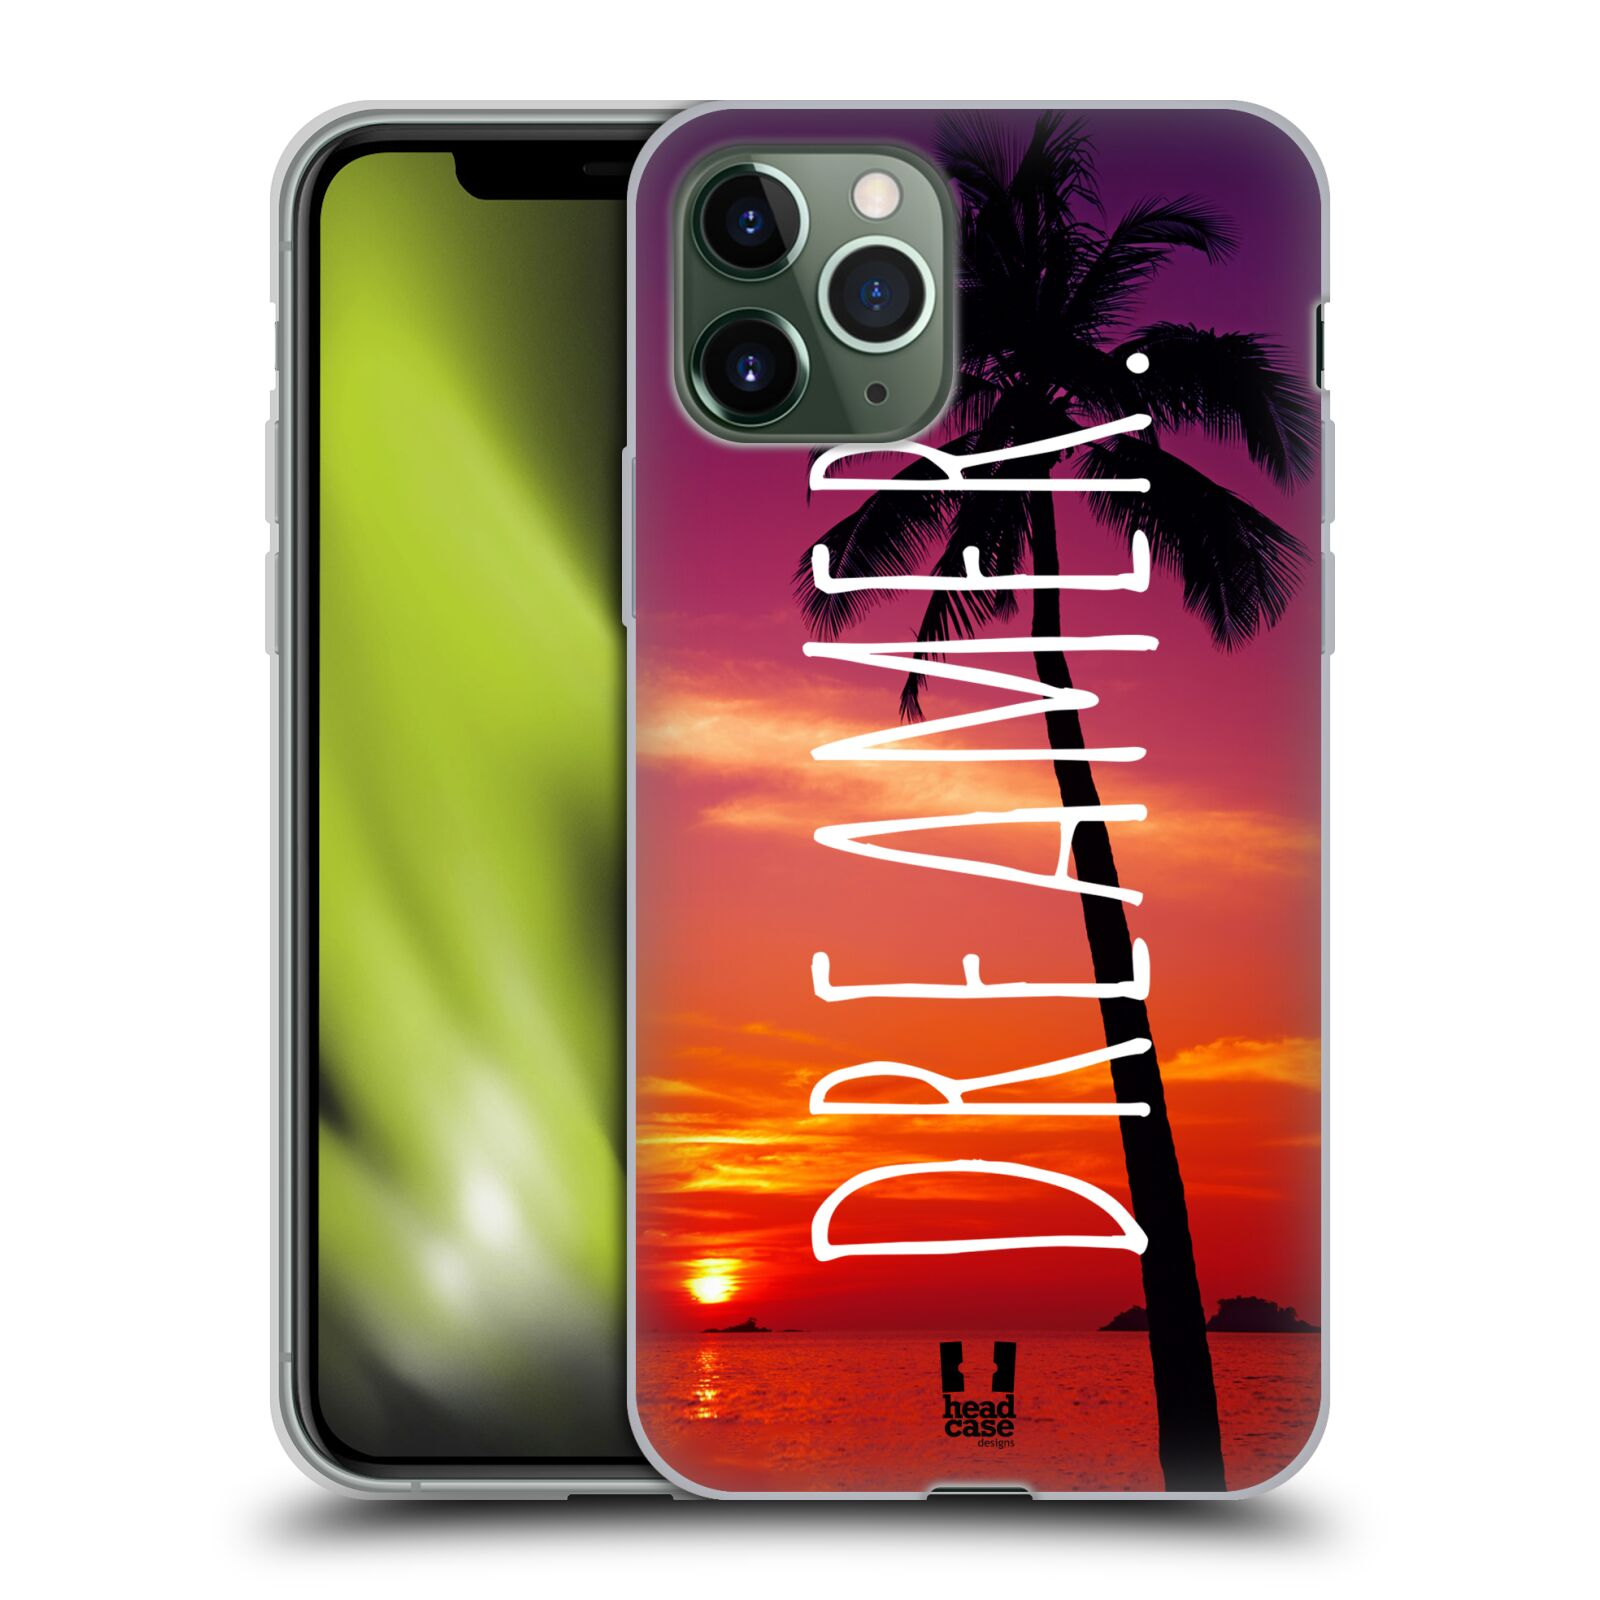 original krytu na iphone 6 plus | Silikonové pouzdro na mobil Apple iPhone 11 Pro - Head Case - MIX DREAMER